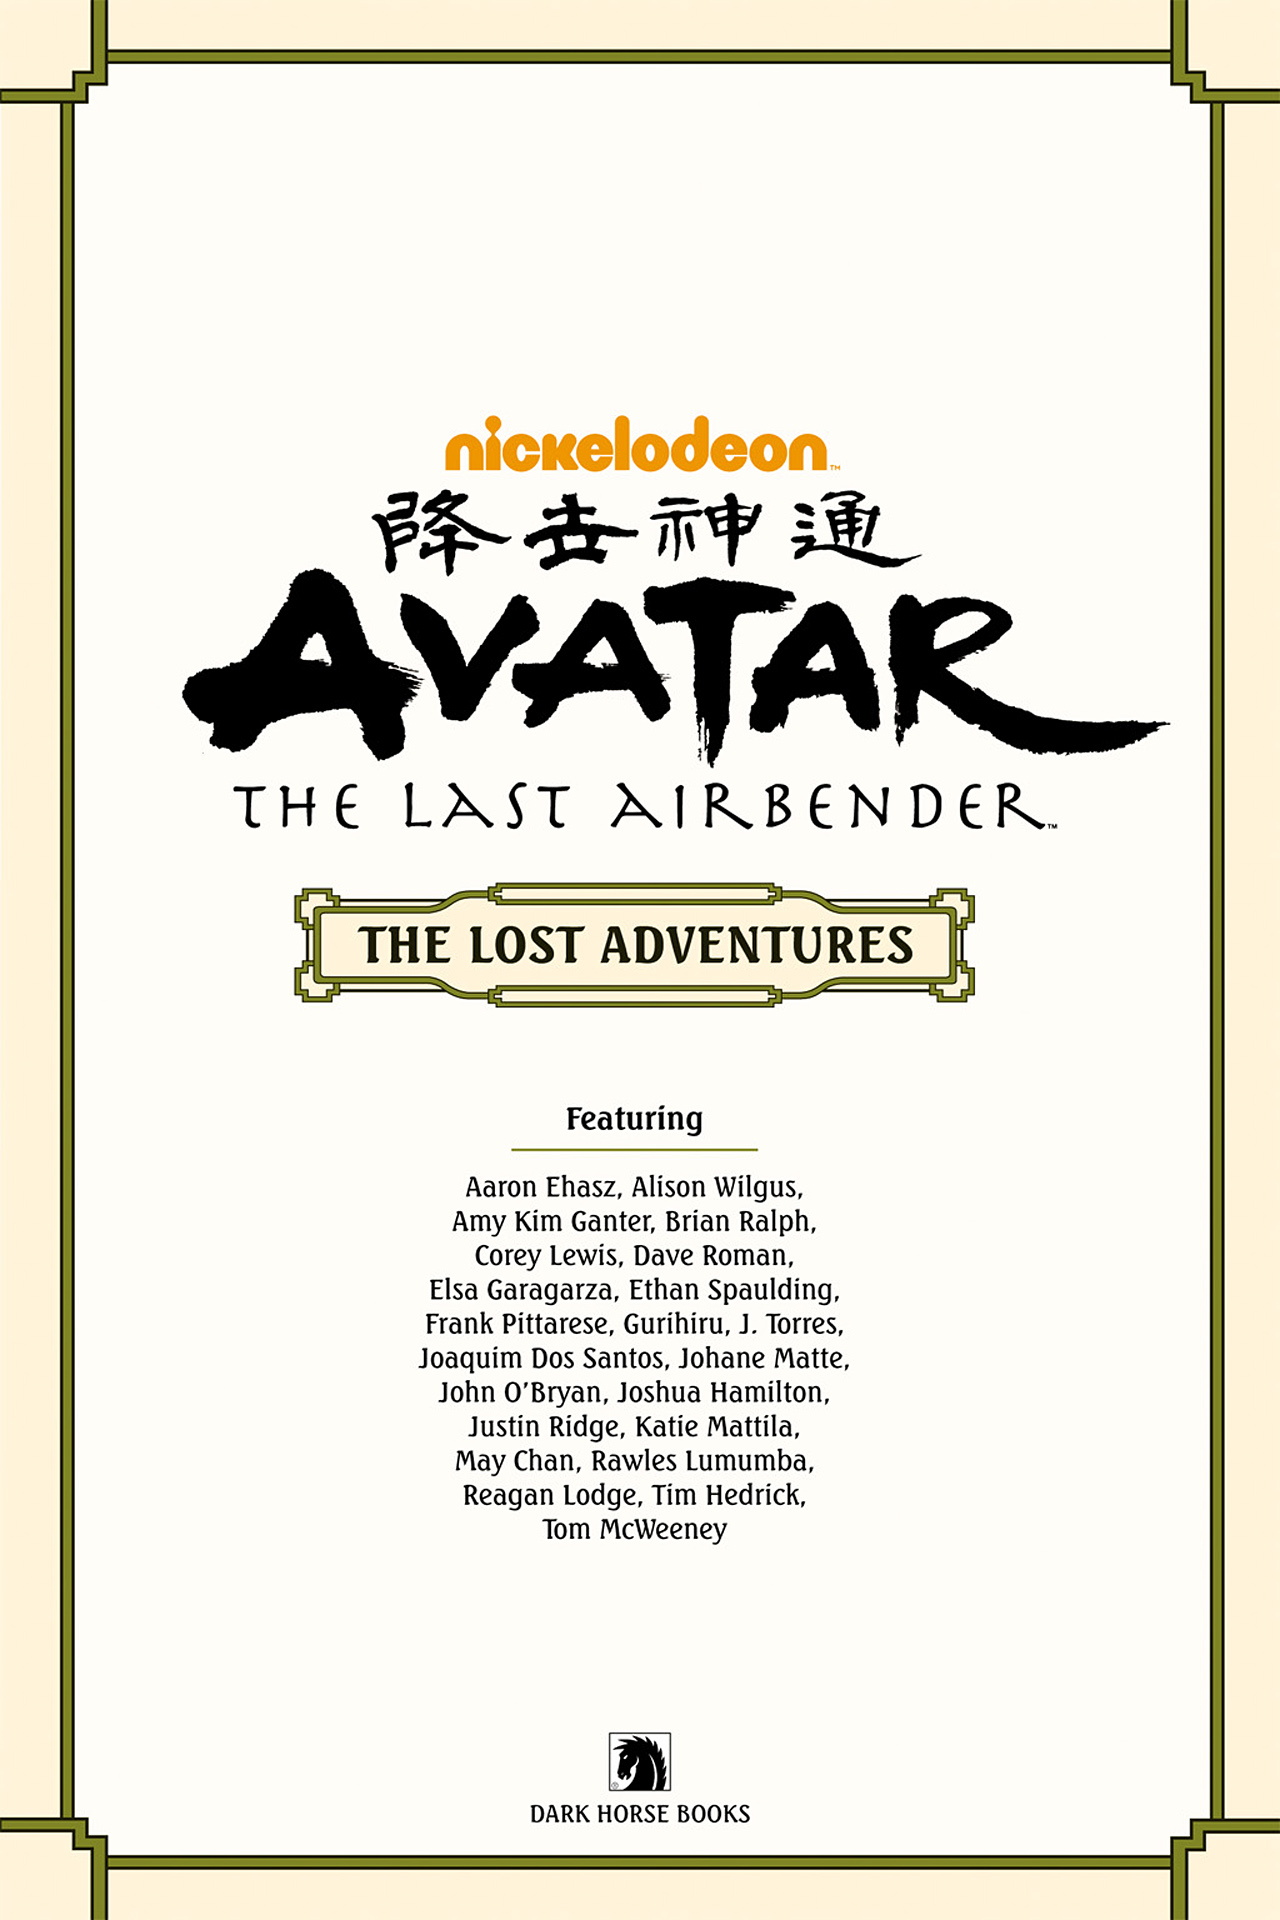 Nickelodeon Avatar: The Last Airbender - The Lost Adventures chap full pic 4